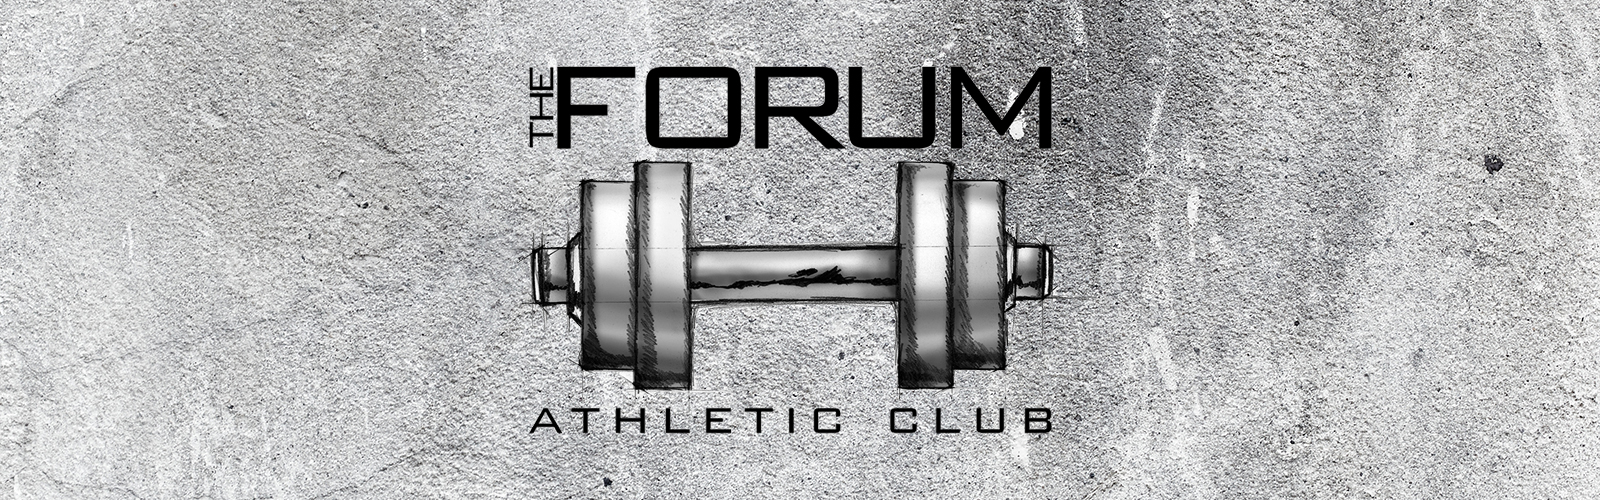 Welcome to The Forum Athletic Club | Atlanta, Georgia 30326